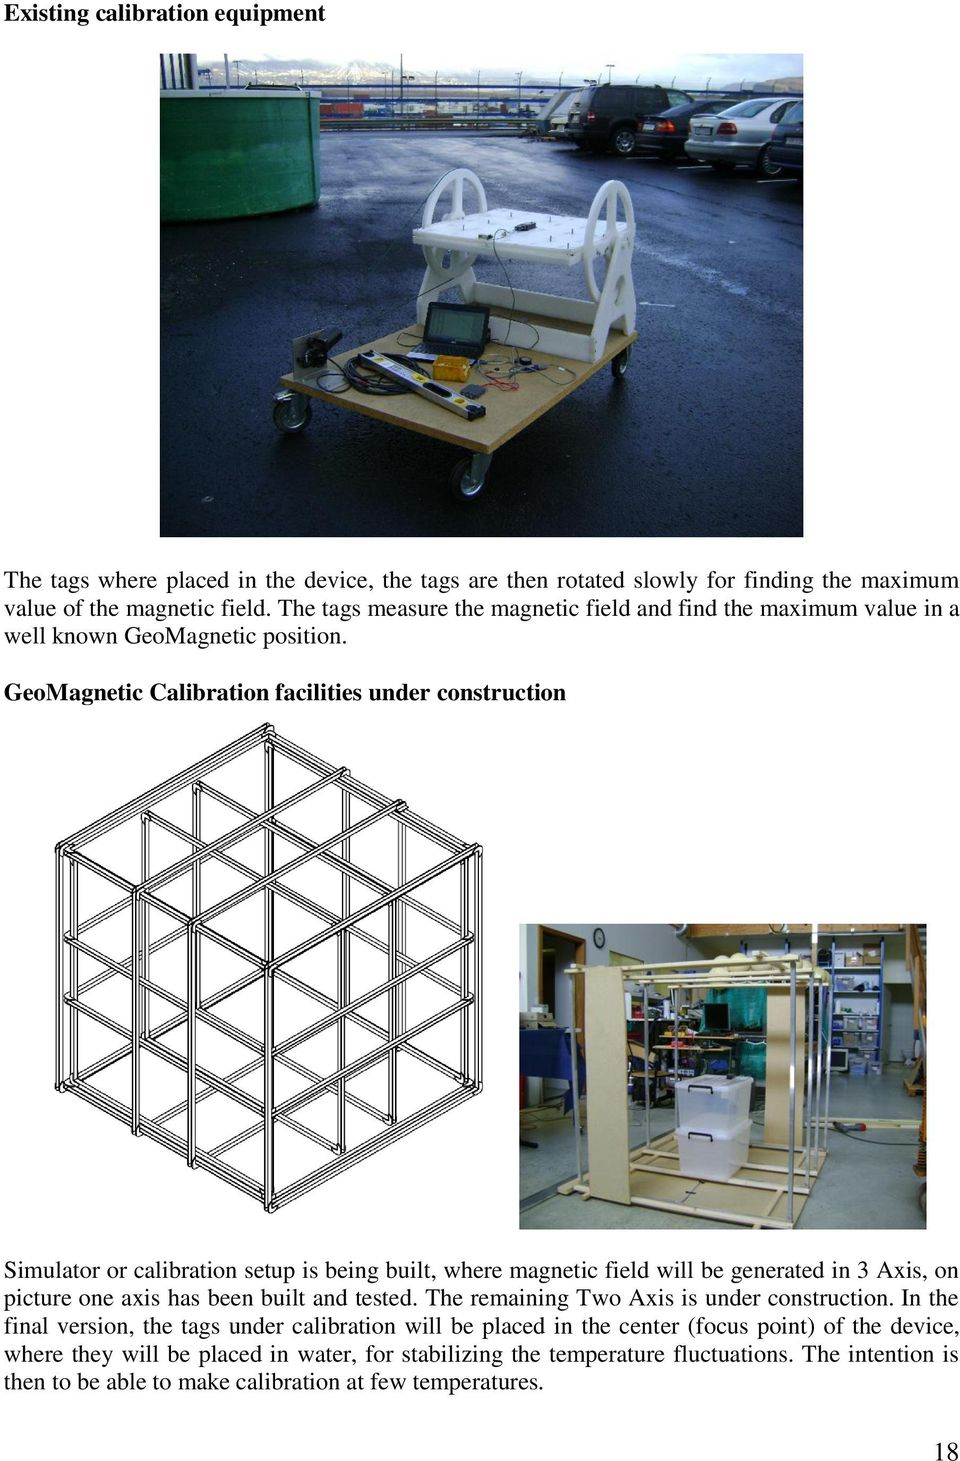 GeoMagnetic Calibration facilities under construction Simulator or calibration setup is being built, where magnetic field will be generated in 3 Axis, on picture one axis has been built and